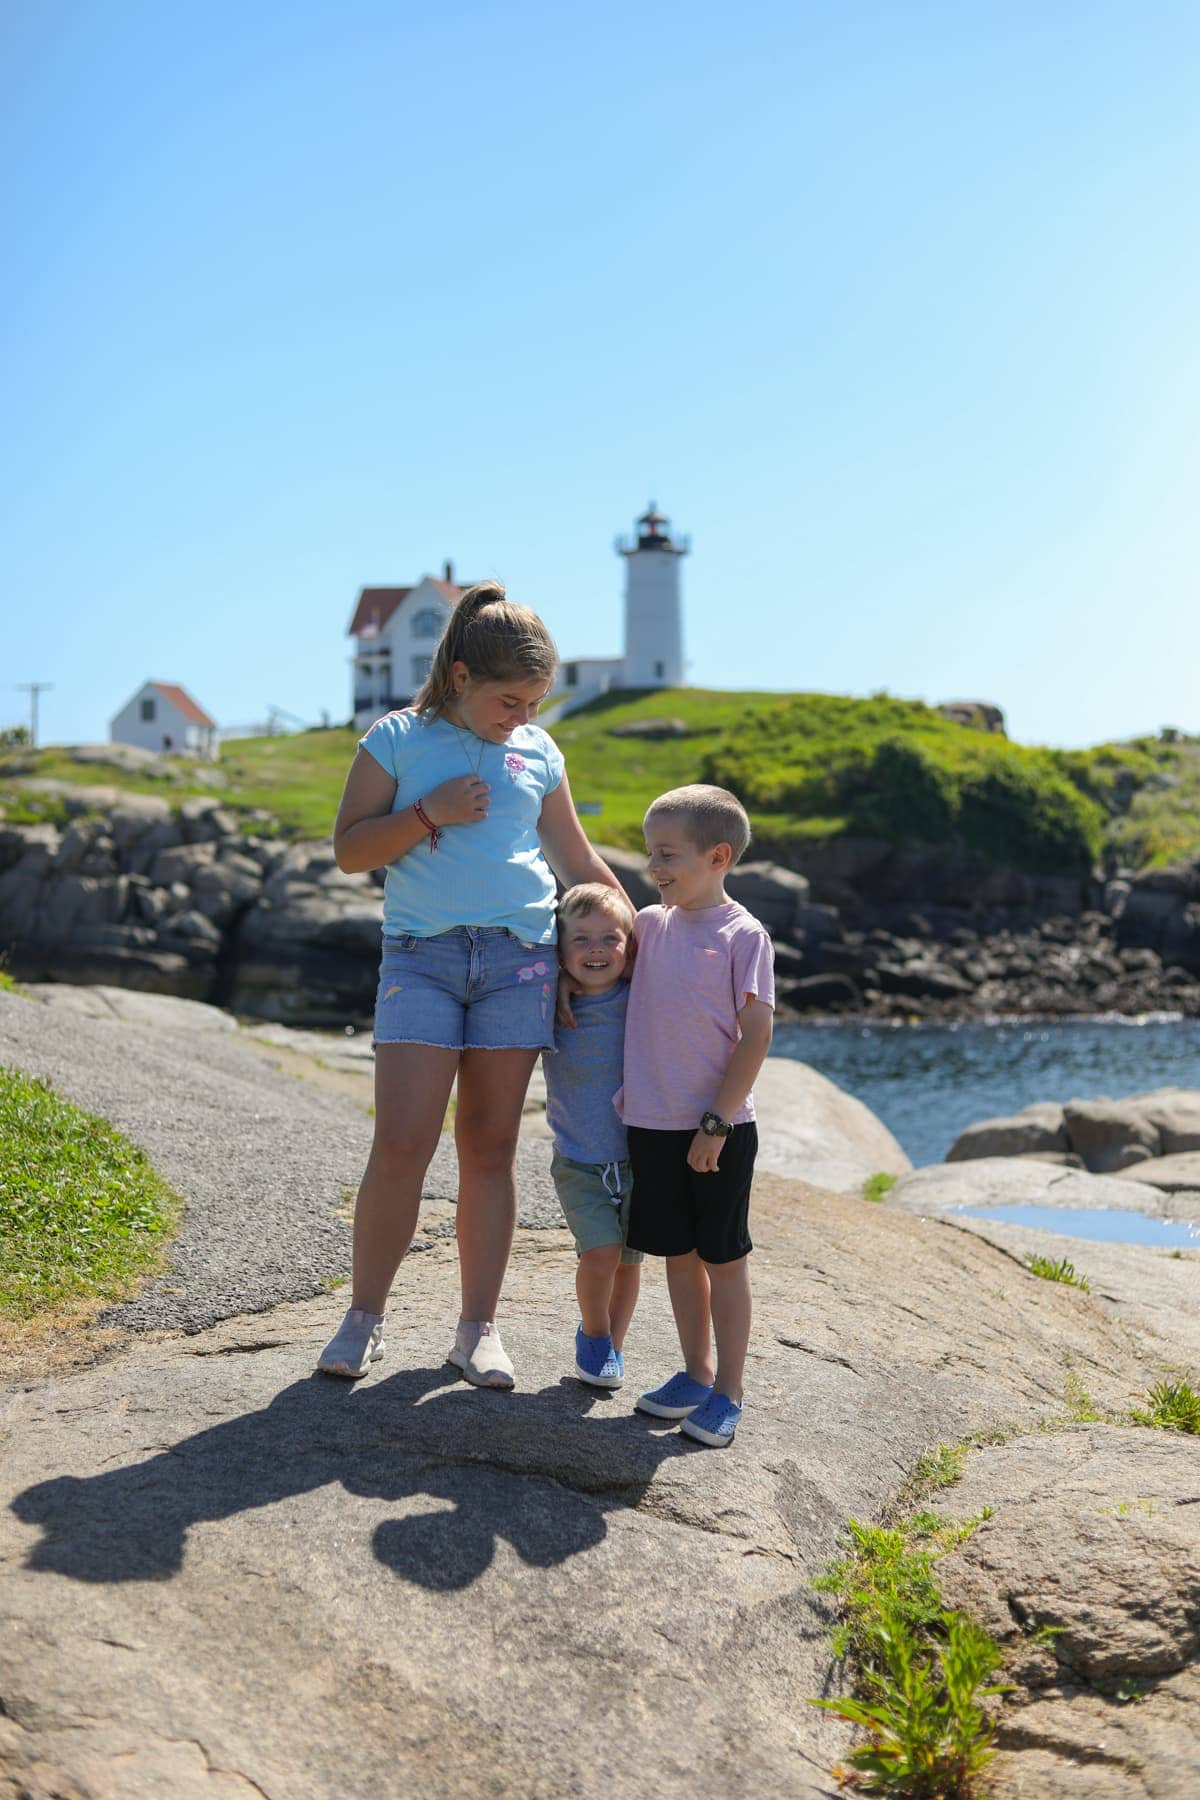 The kids at the beach with a lighthouse in the background